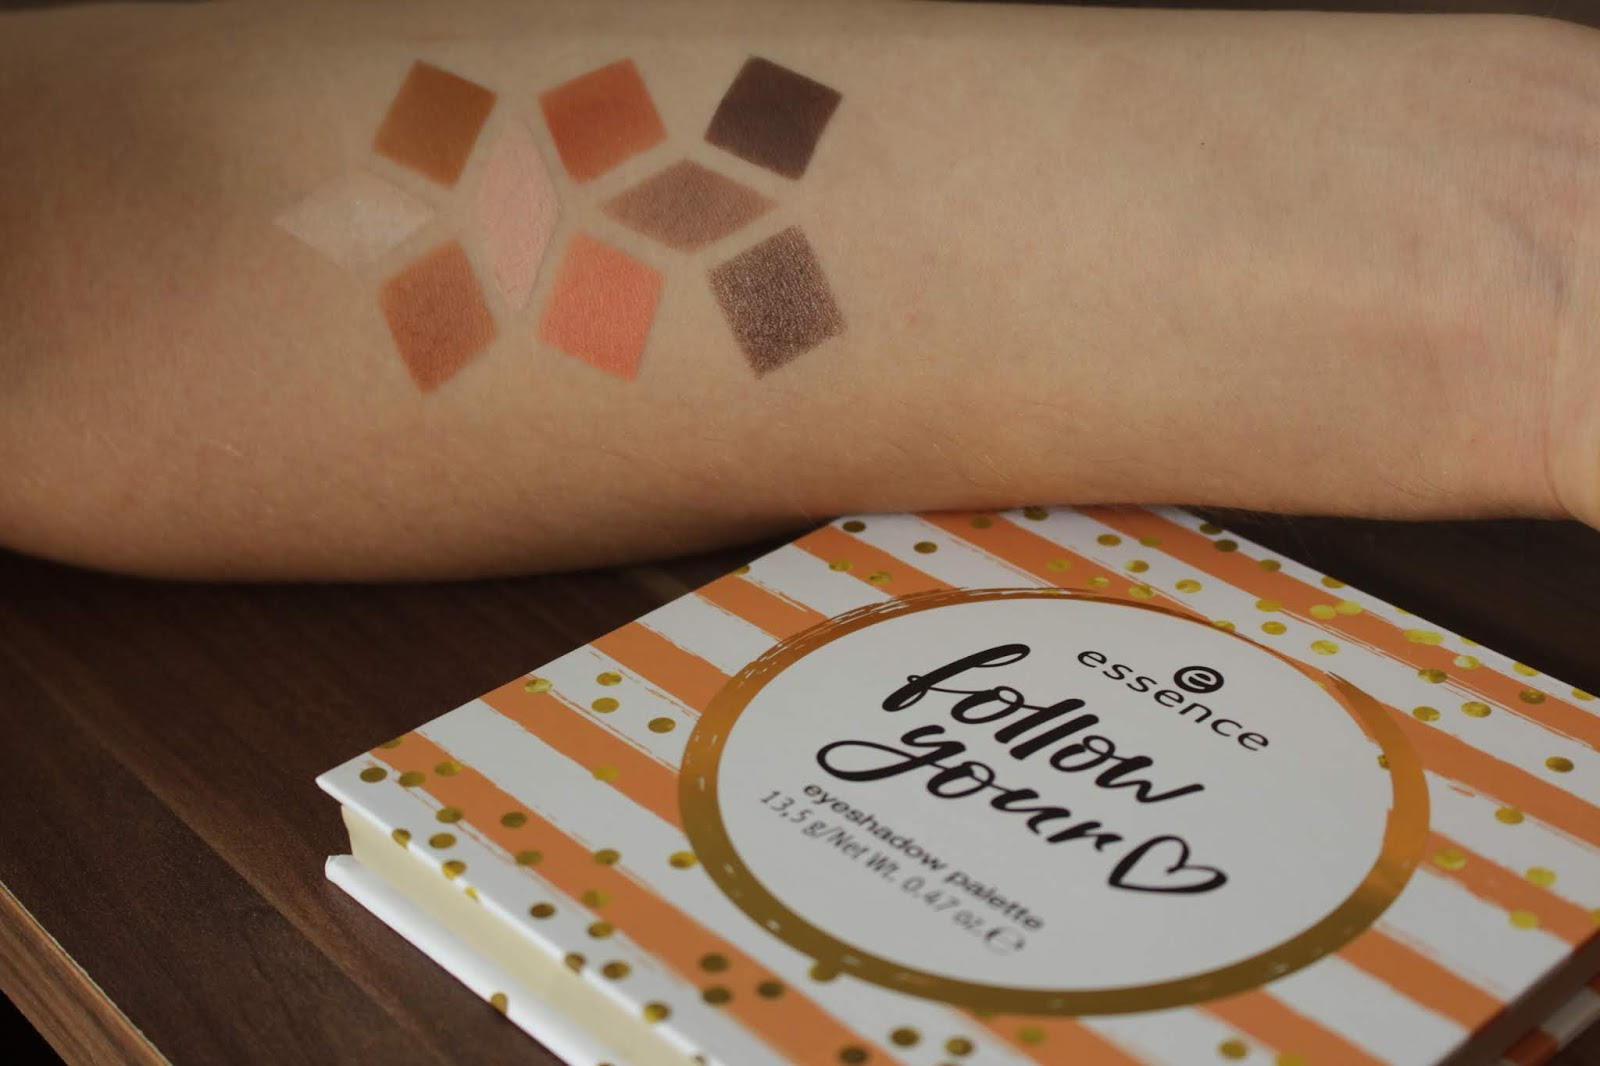 Follow Your Heart Essence Follow Your Heart Eyeshadow Palette Swatches Und Review